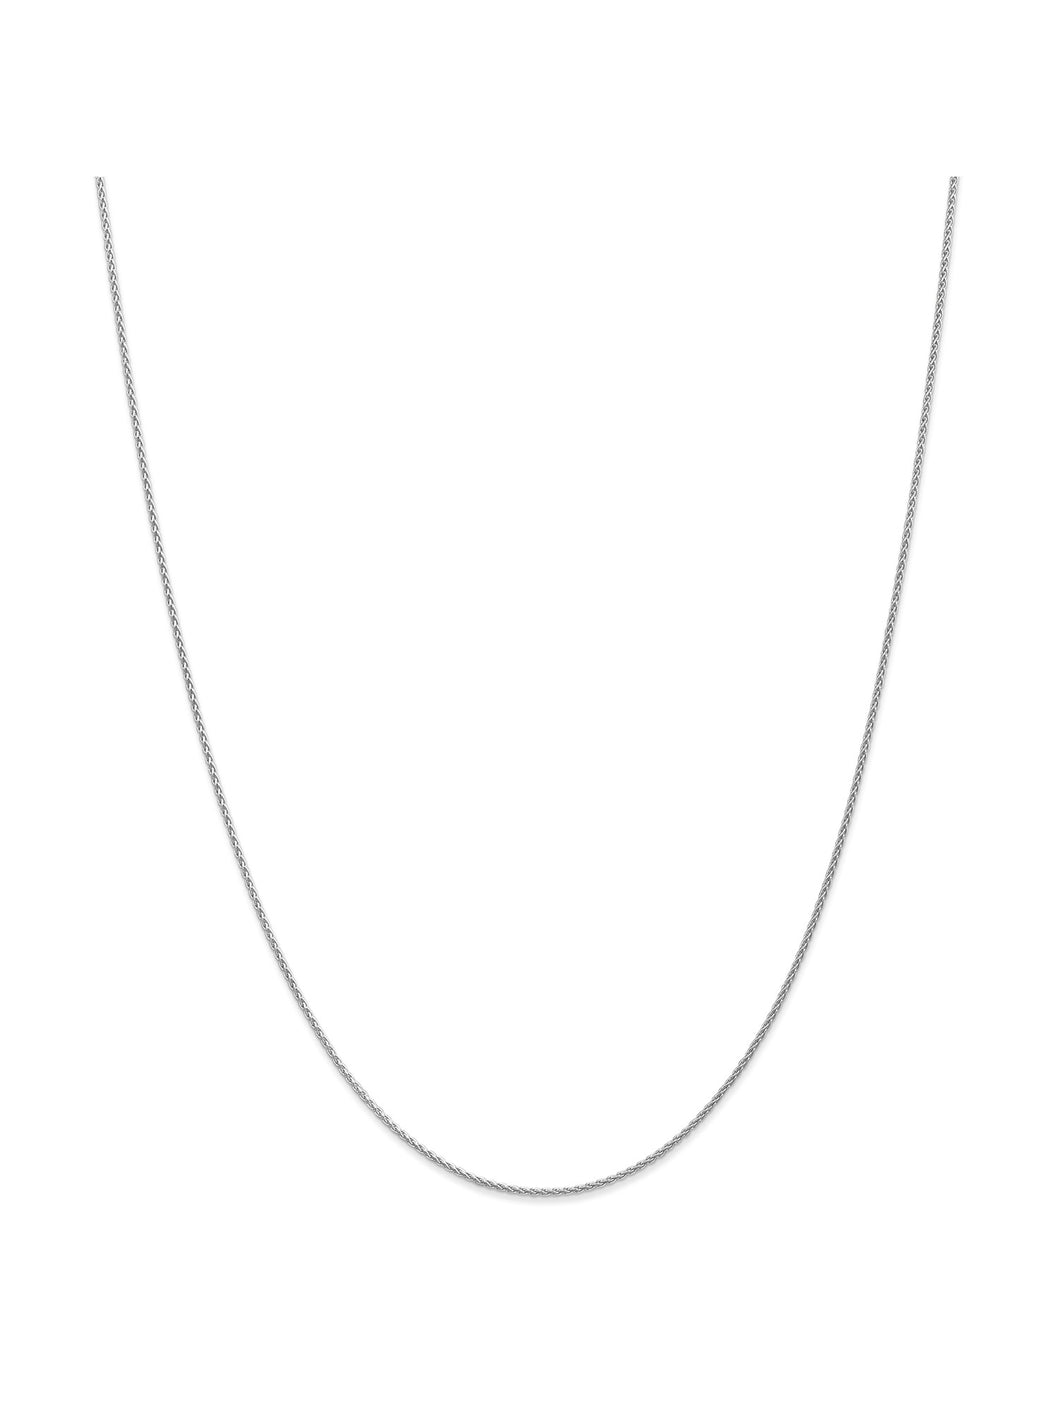 14k White Gold 1.2mm Parisian Wheat Chain Necklace